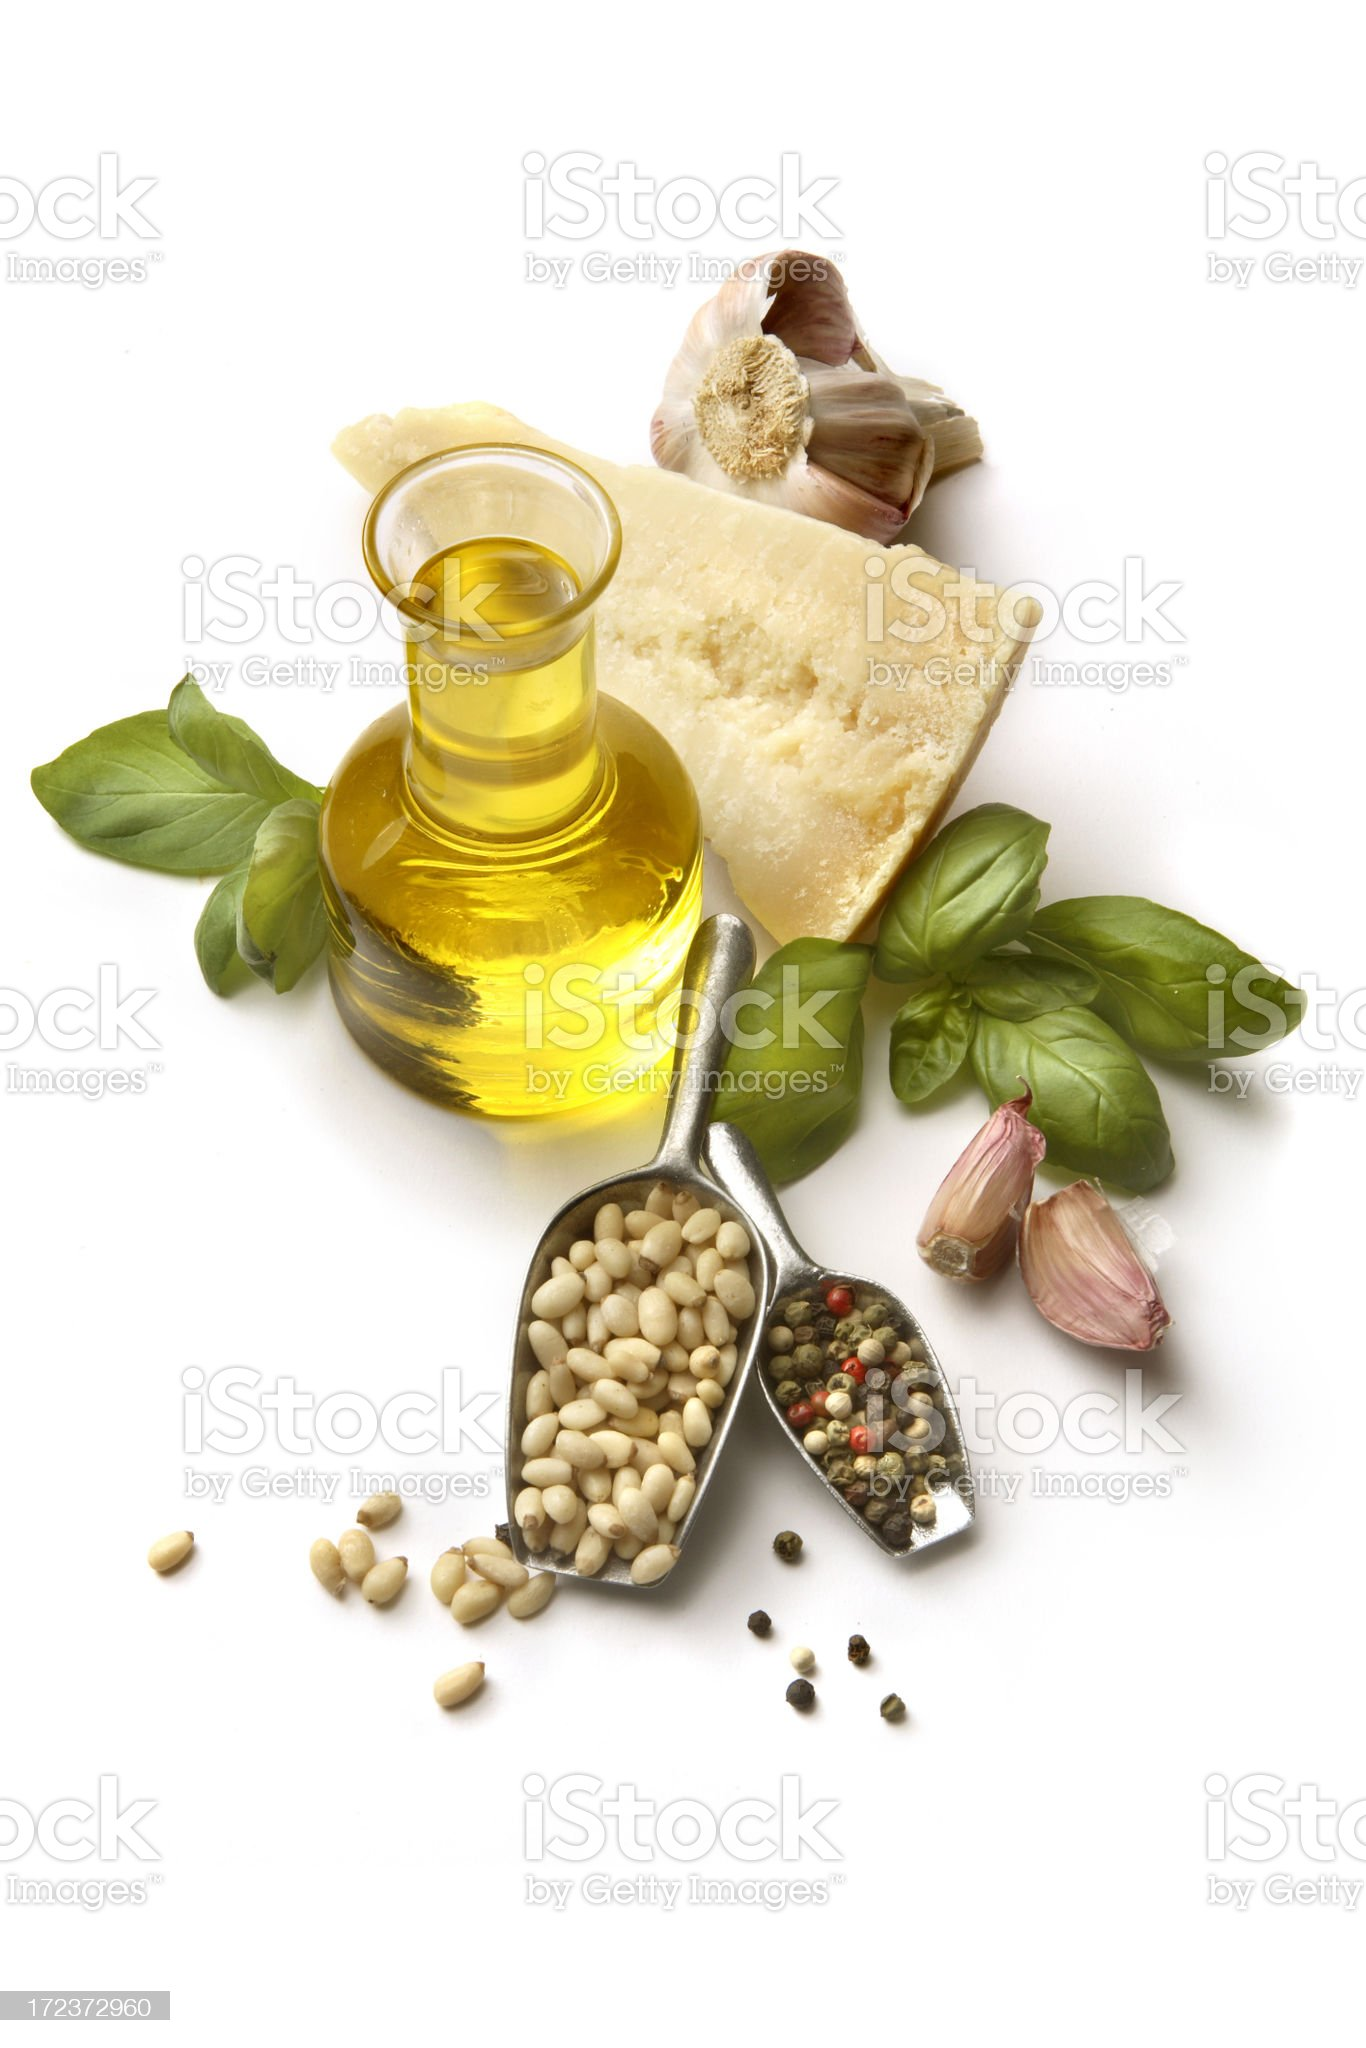 Flavouring: Pesto Ingredients Isolated on White Background royalty-free stock photo